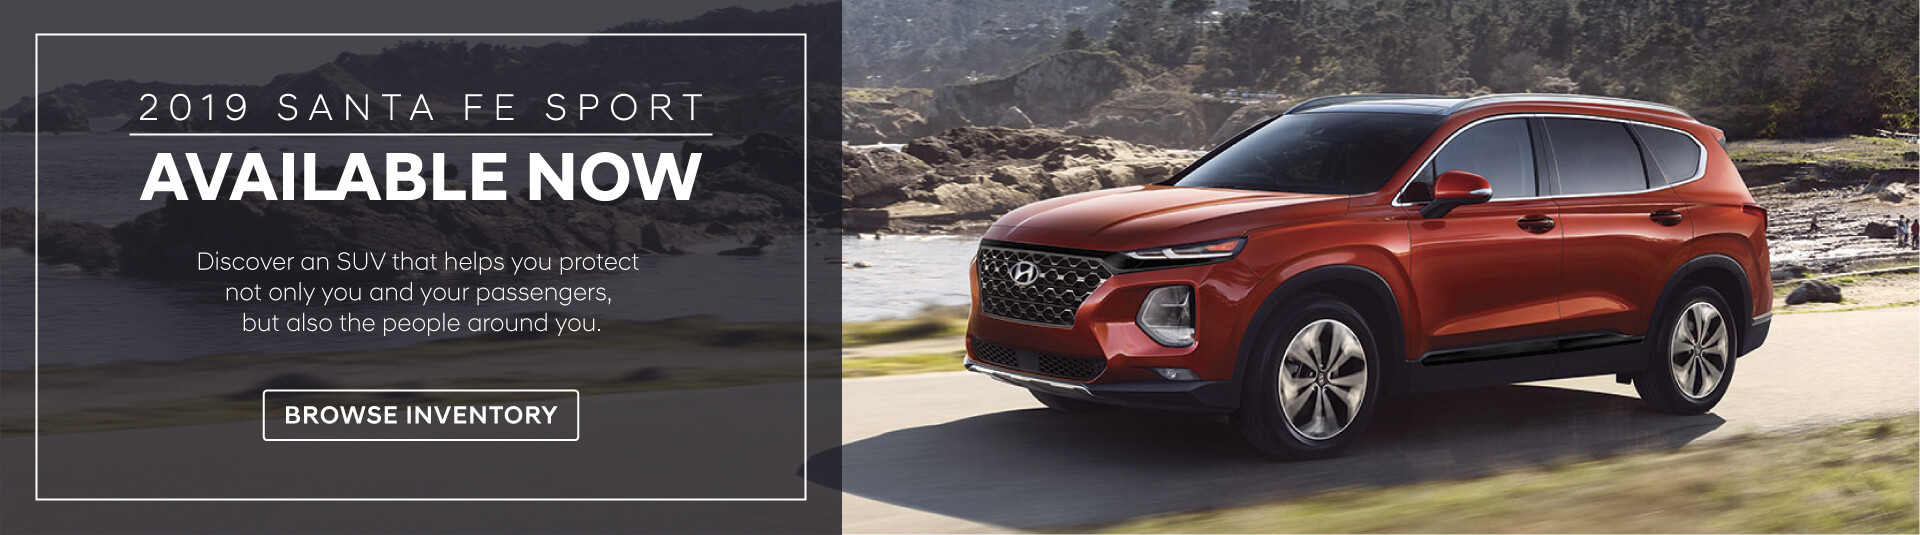 2019 Sante Fe Sport Available Now